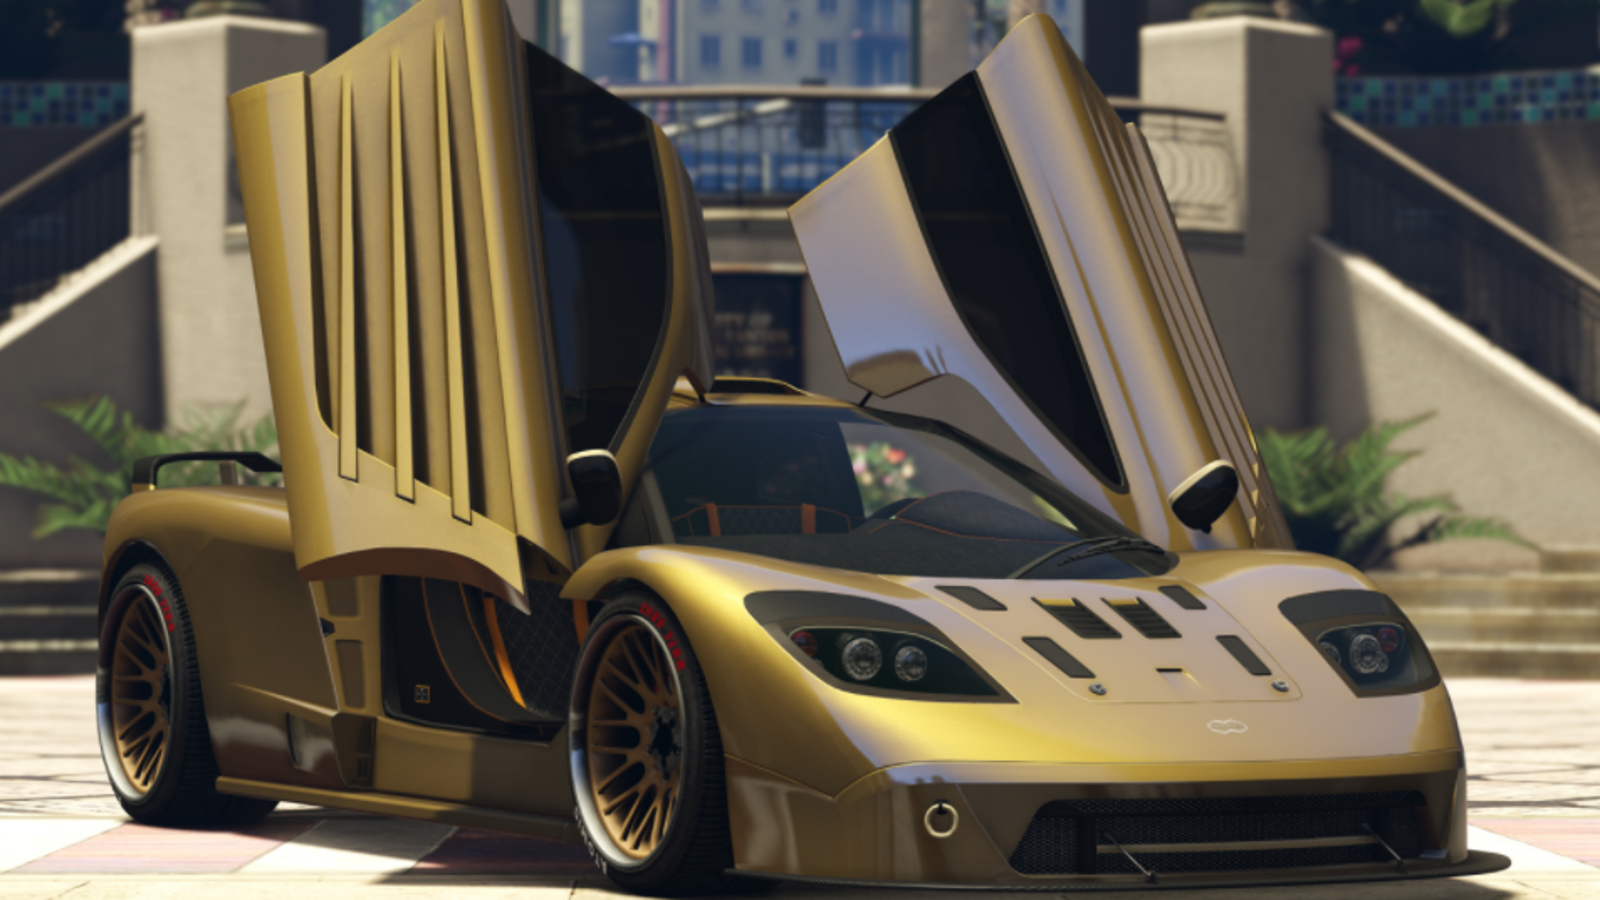 The Good And Bad Of Gta Online Four Years Later